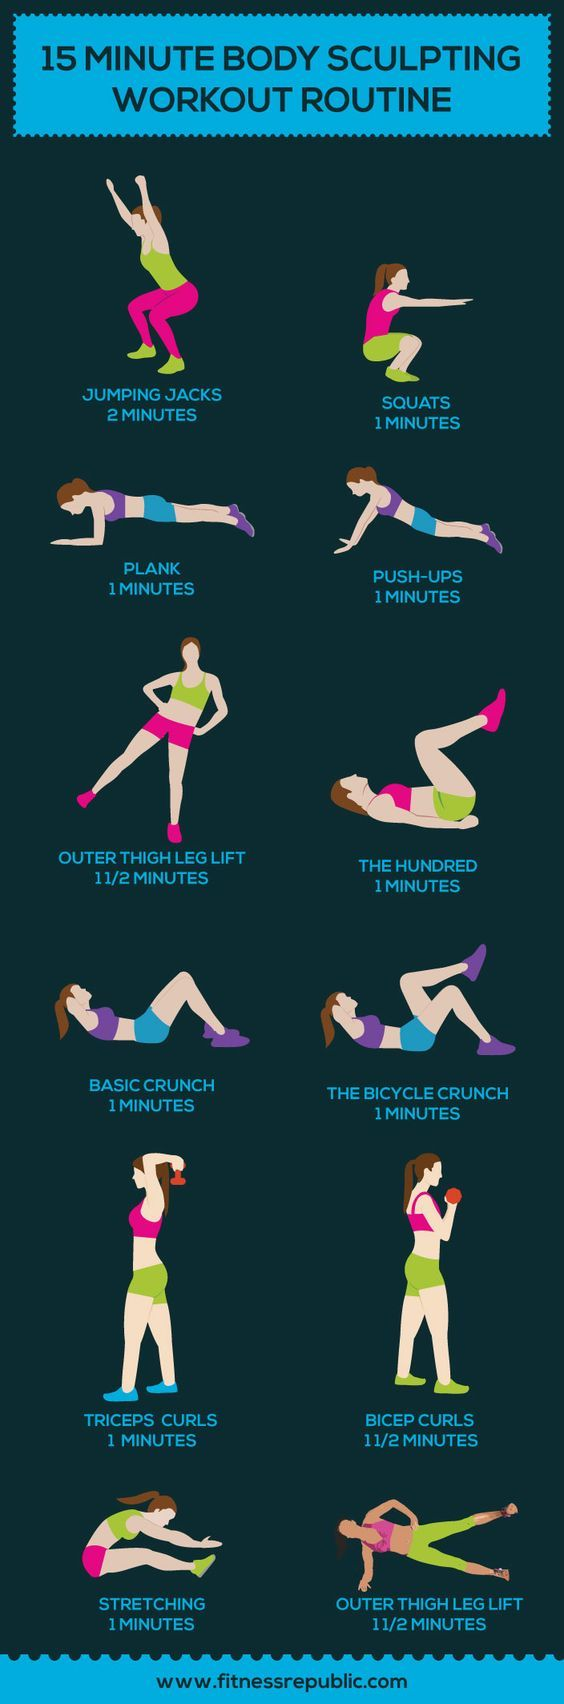 15 Minute Body Sculpting Workout Routine: